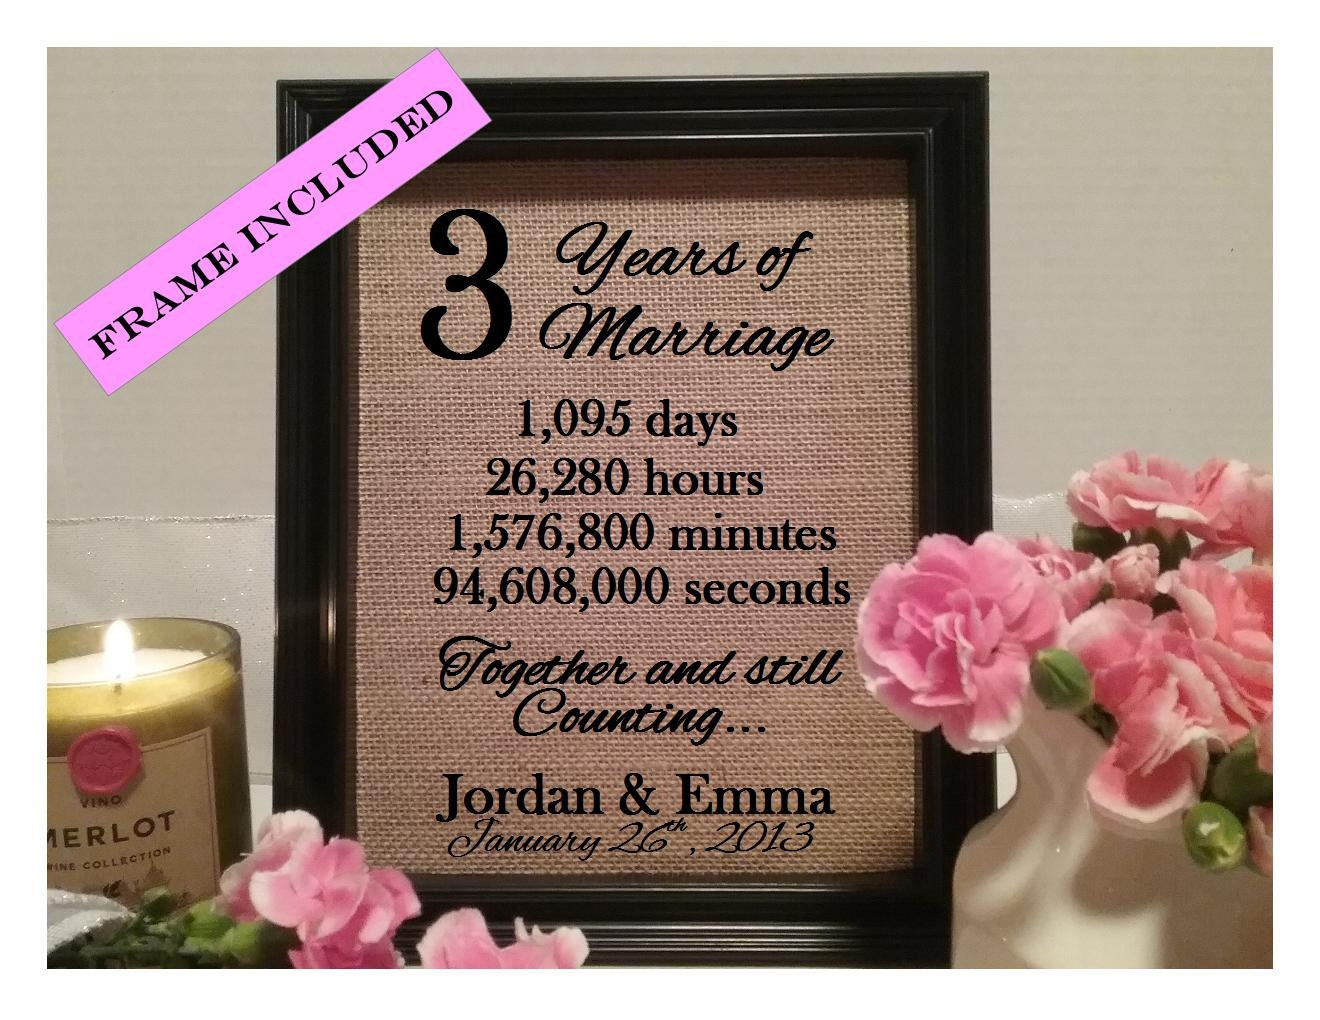 Year 3 Wedding Anniversary Gifts: Framed 3rd Anniversary Gift 3rd Wedding Anniversary Gifts